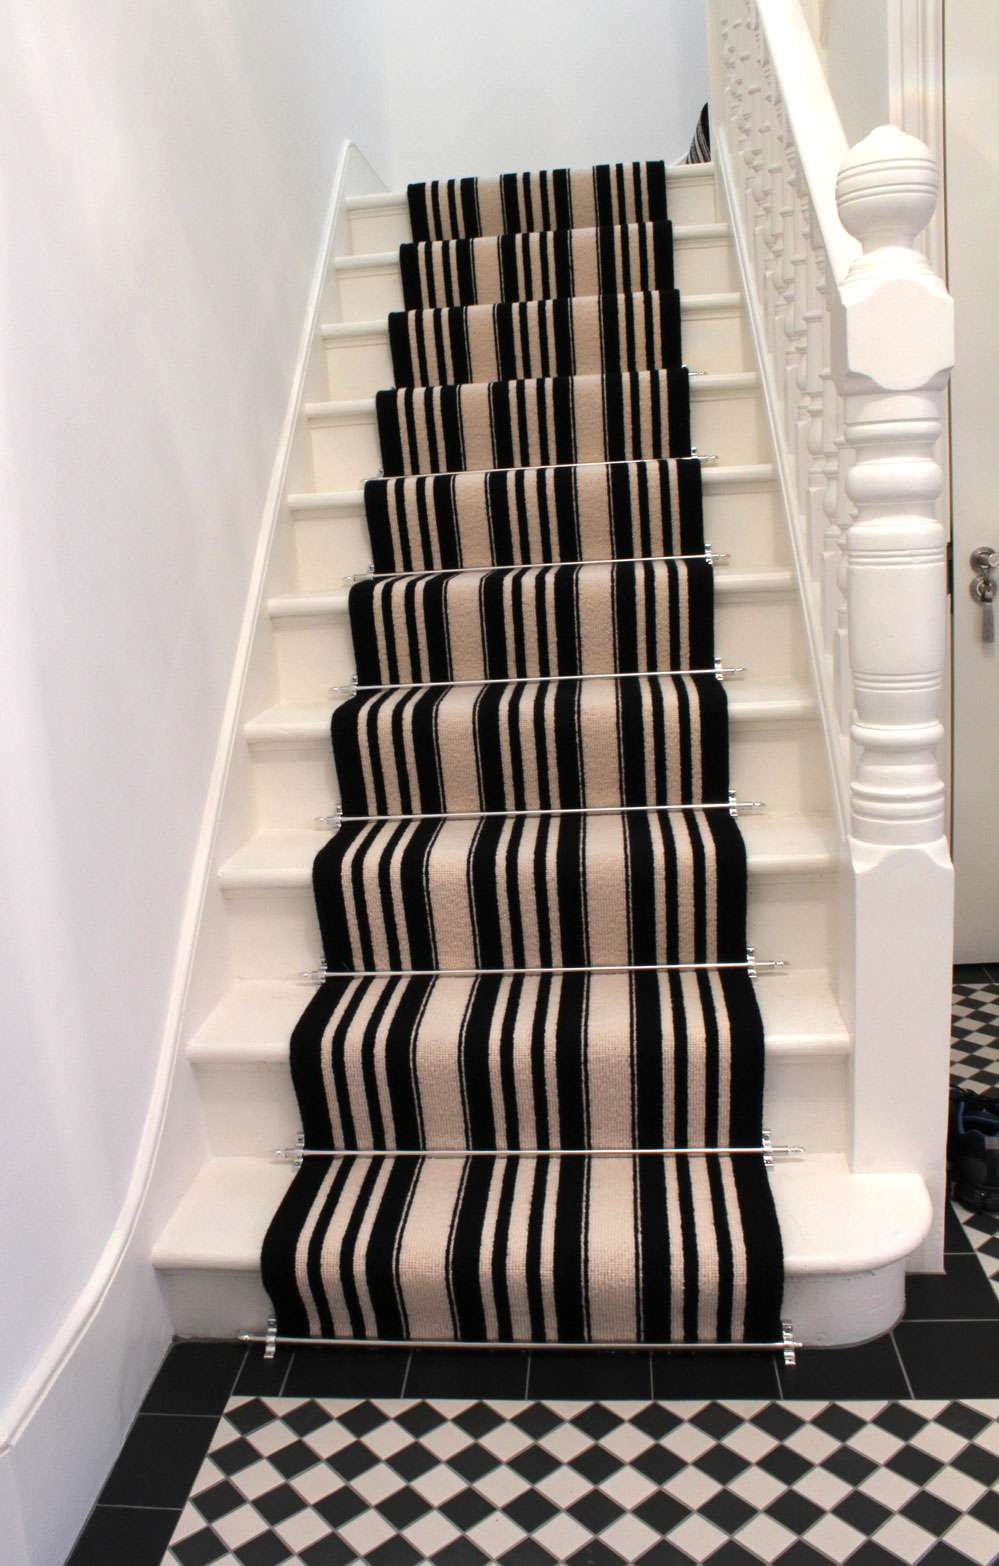 Interactive Rubber Stair Tread Mats Decoration For Your Home Throughout Stair Tread Carpet Bars (#16 of 20)